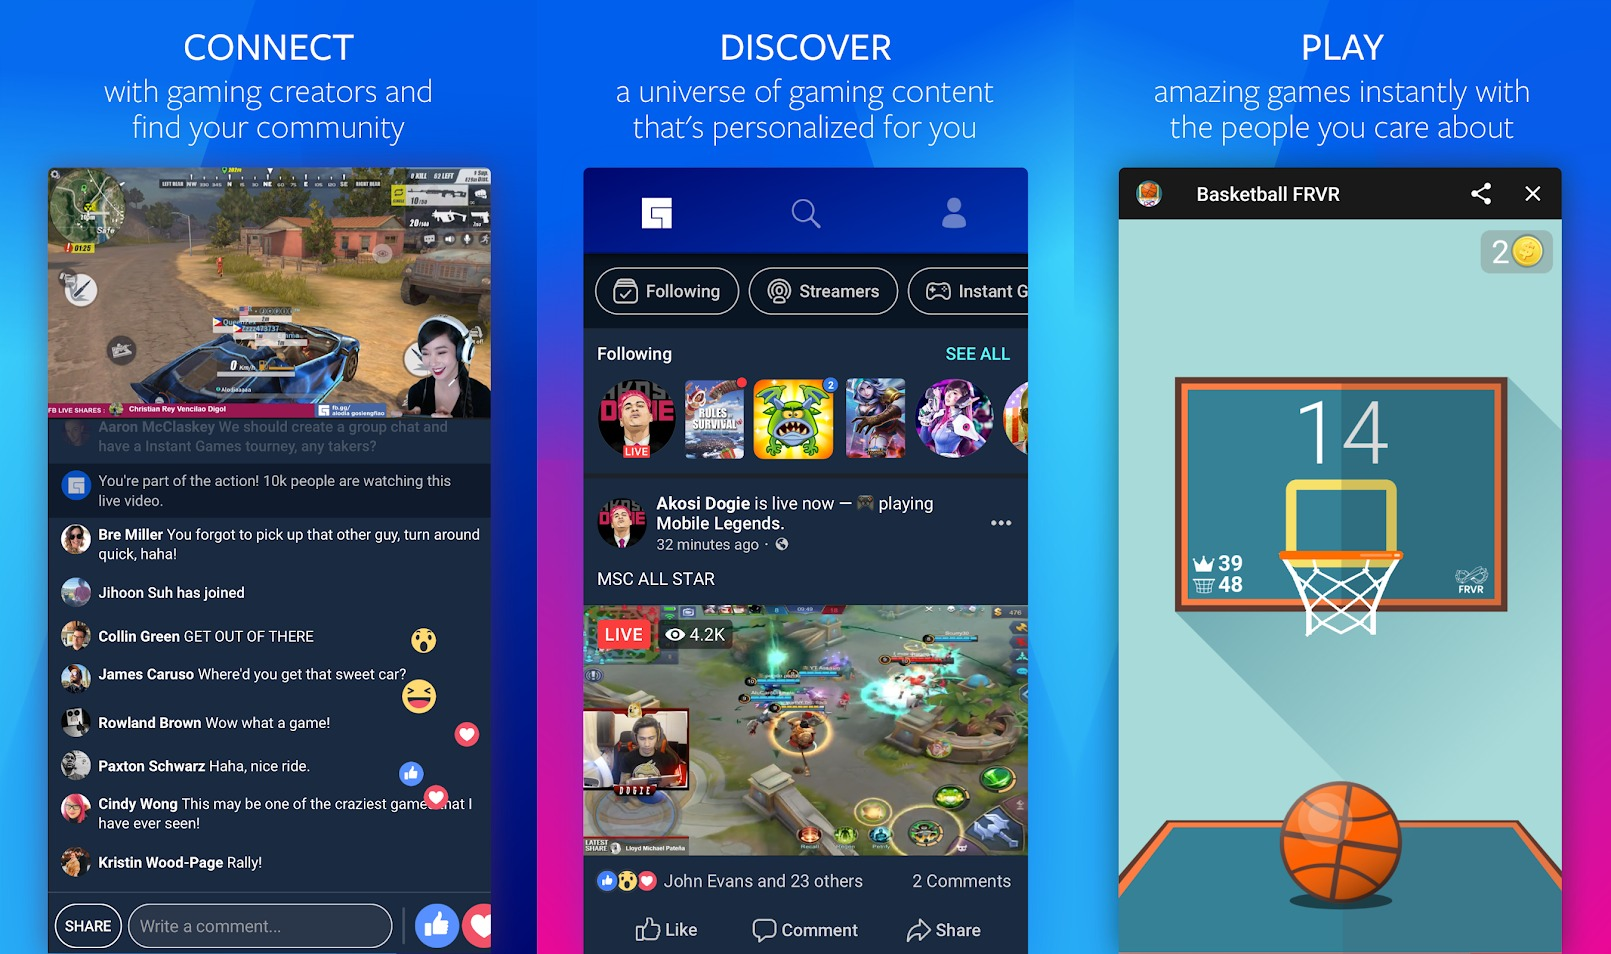 Update: APK Download] Facebook's gaming hub now has an Android app